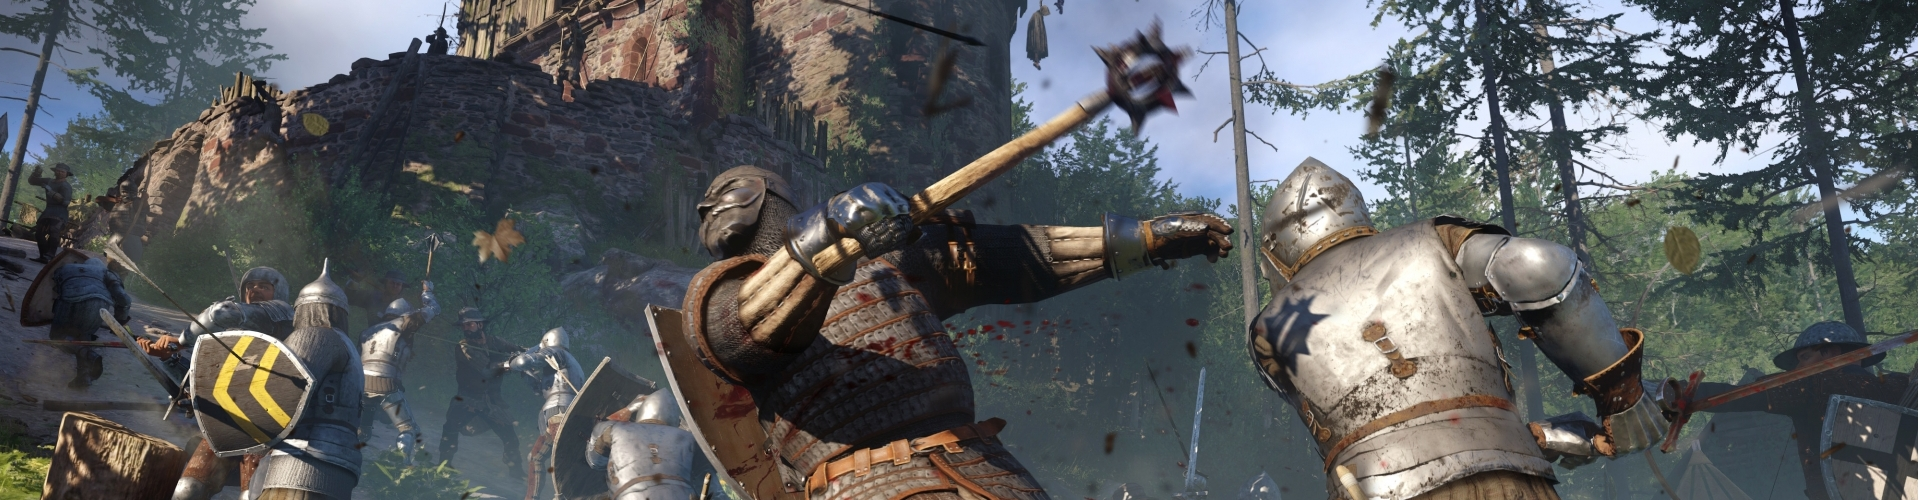 Kingdom Come Deliverance: Beta-Version angespielt